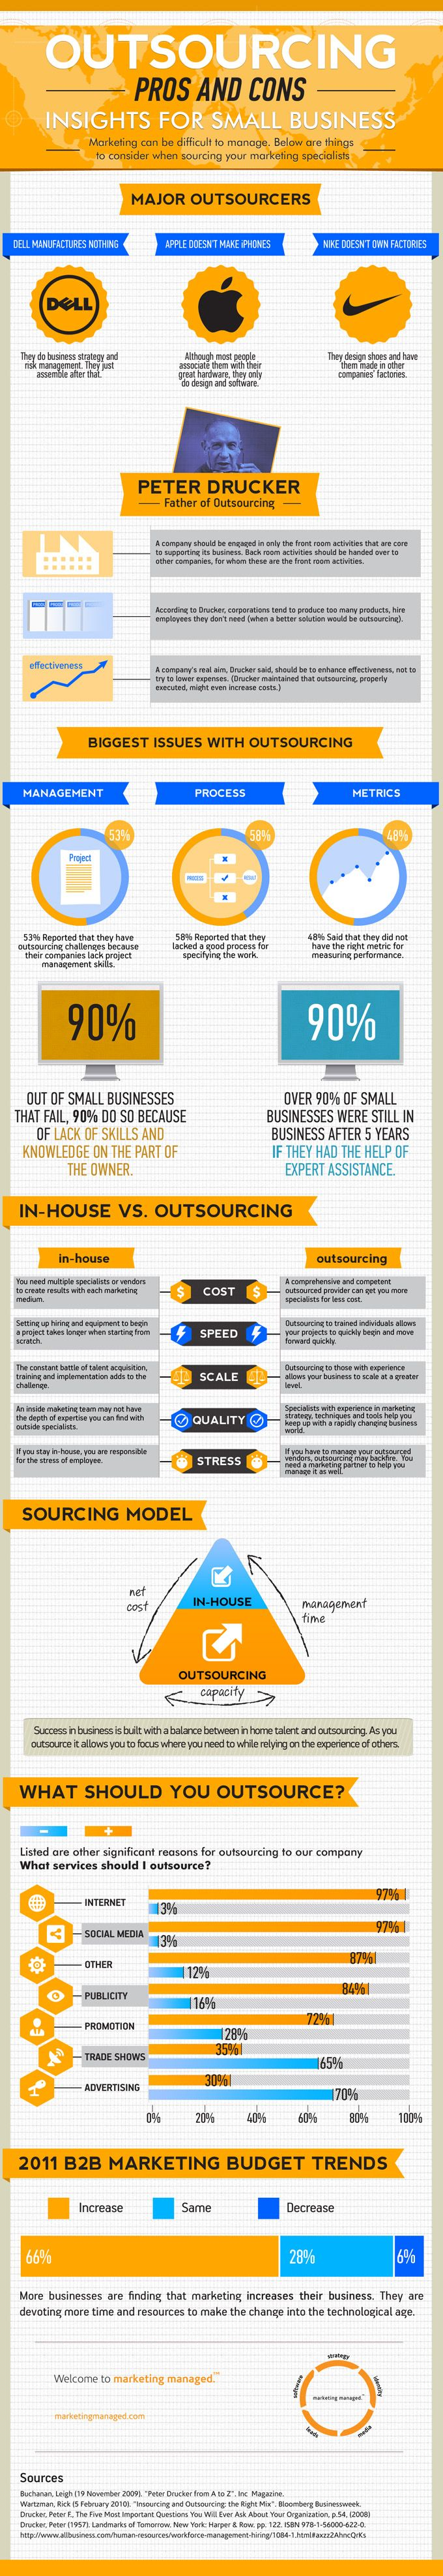 Pros & Cons of Outsourcing Manufacturing Jobs